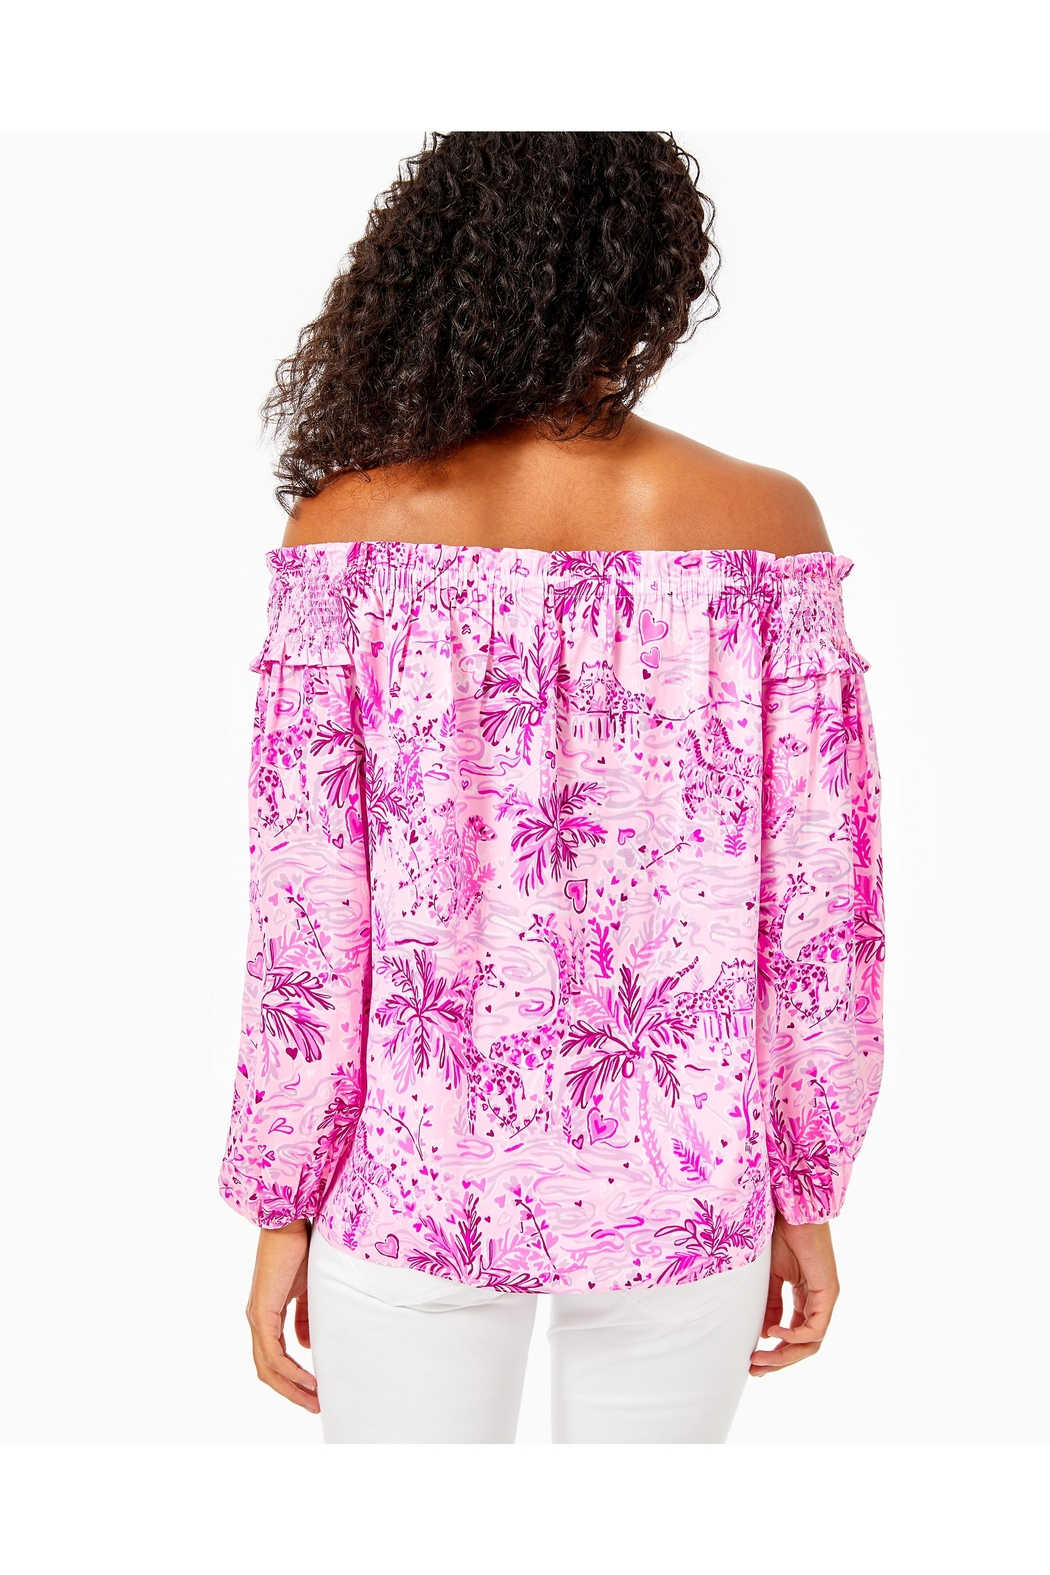 Lilly Pulitzer Blanche Off-The-Shoulder Top - Front Full Image